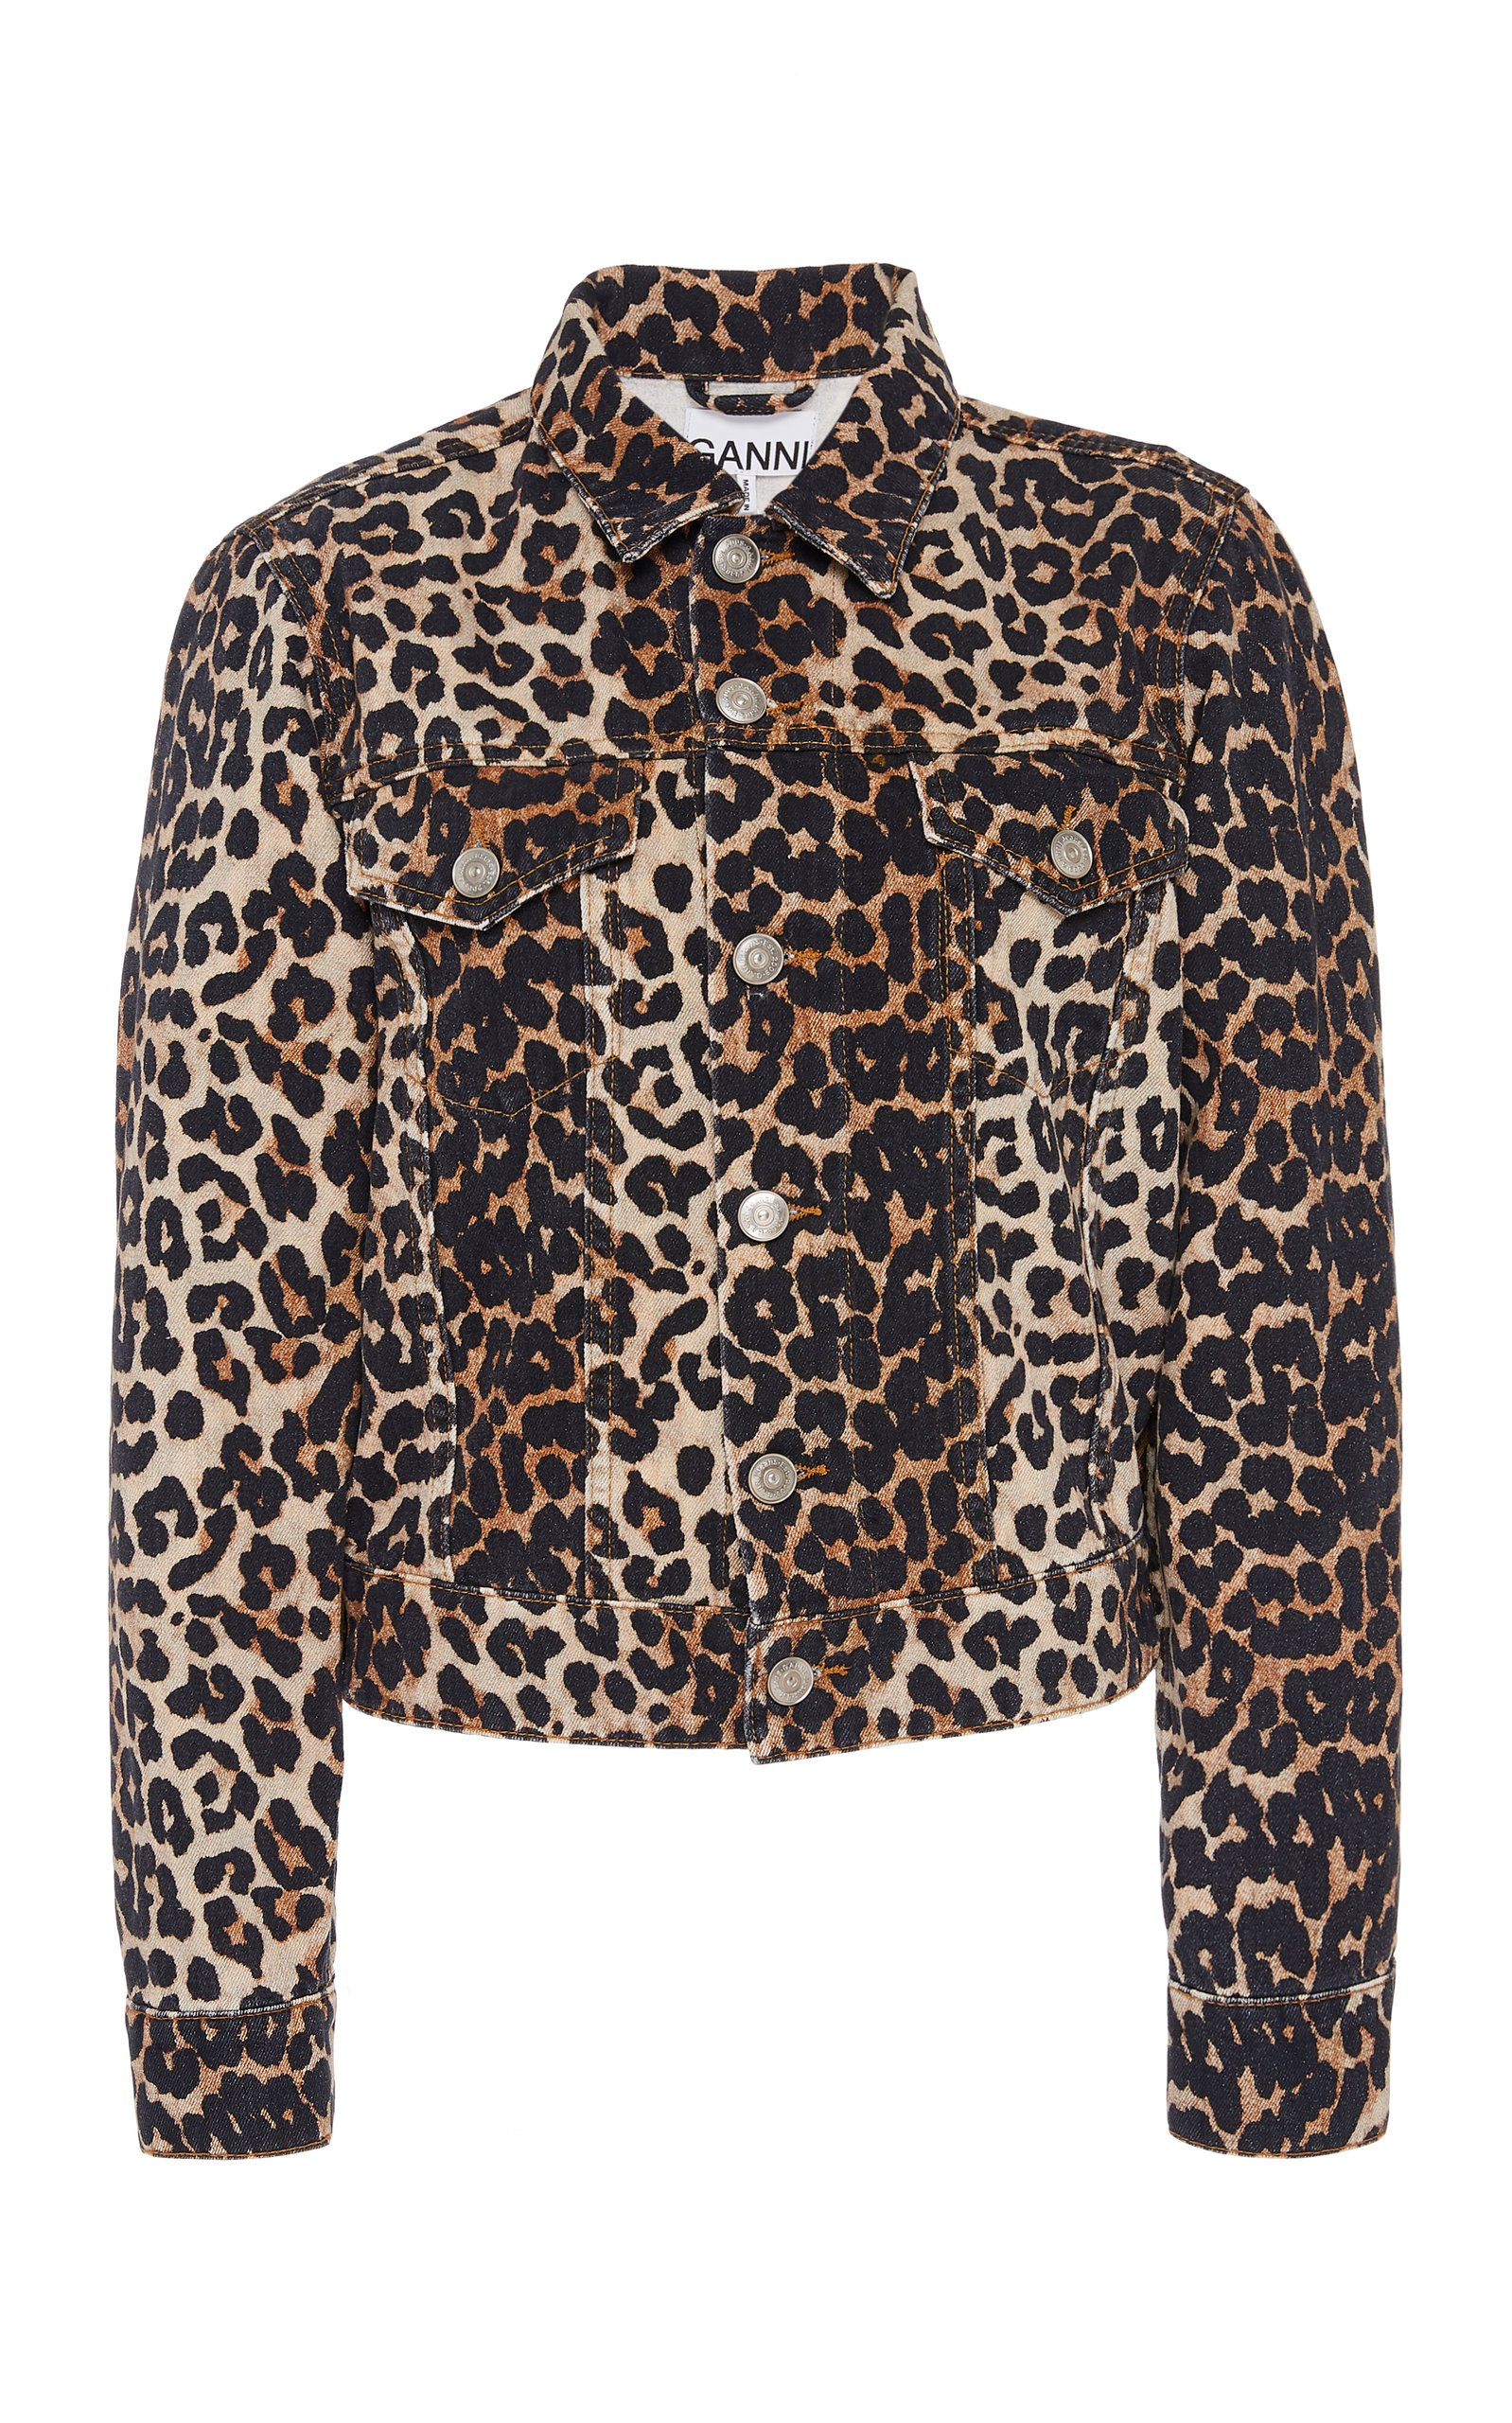 Ganni Leopard Denim Jacket